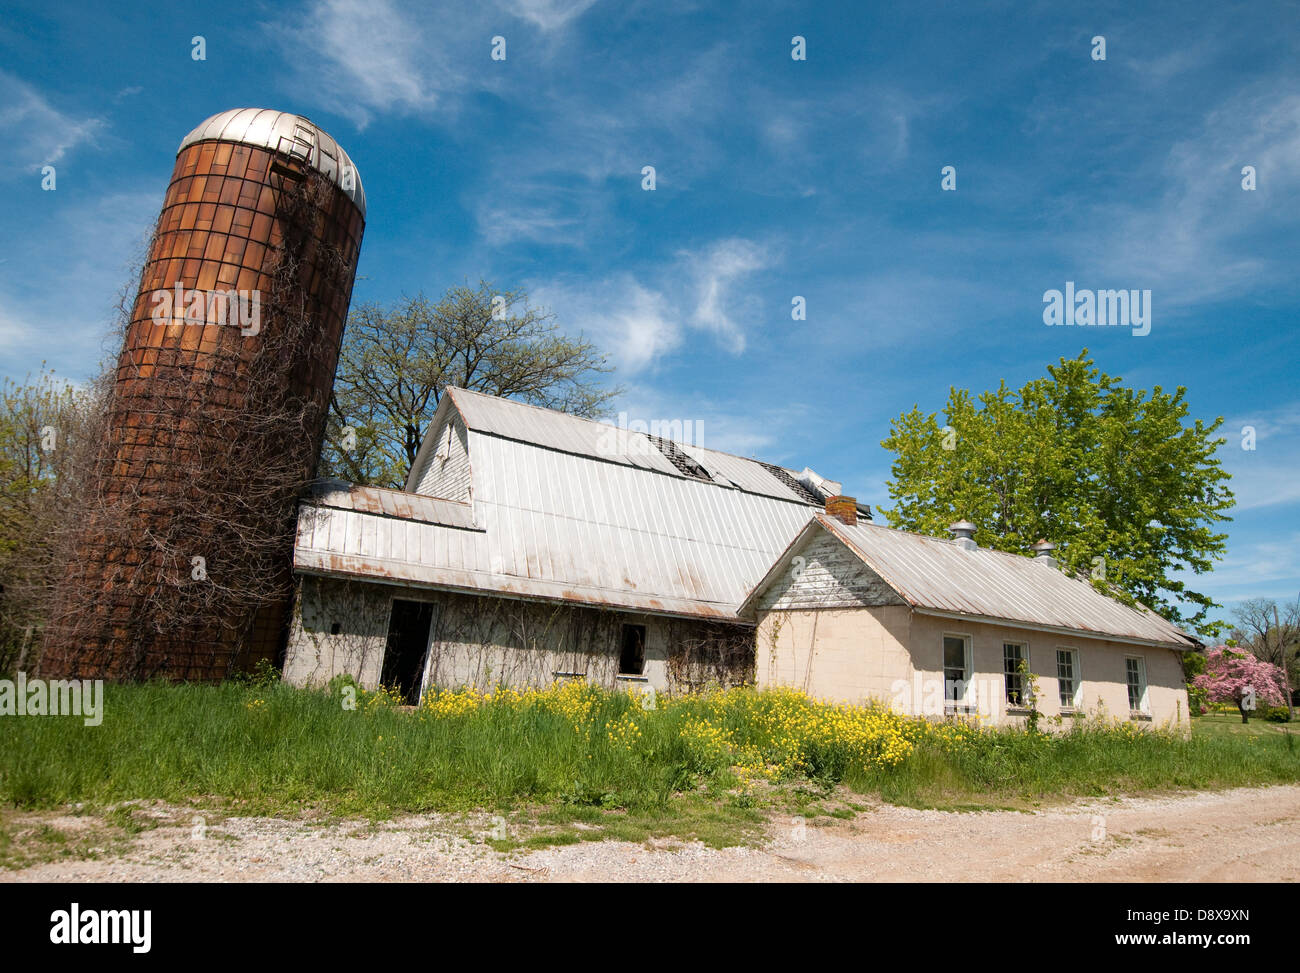 Spring on a farm in rural Carroll County, Maryland USA - Stock Image